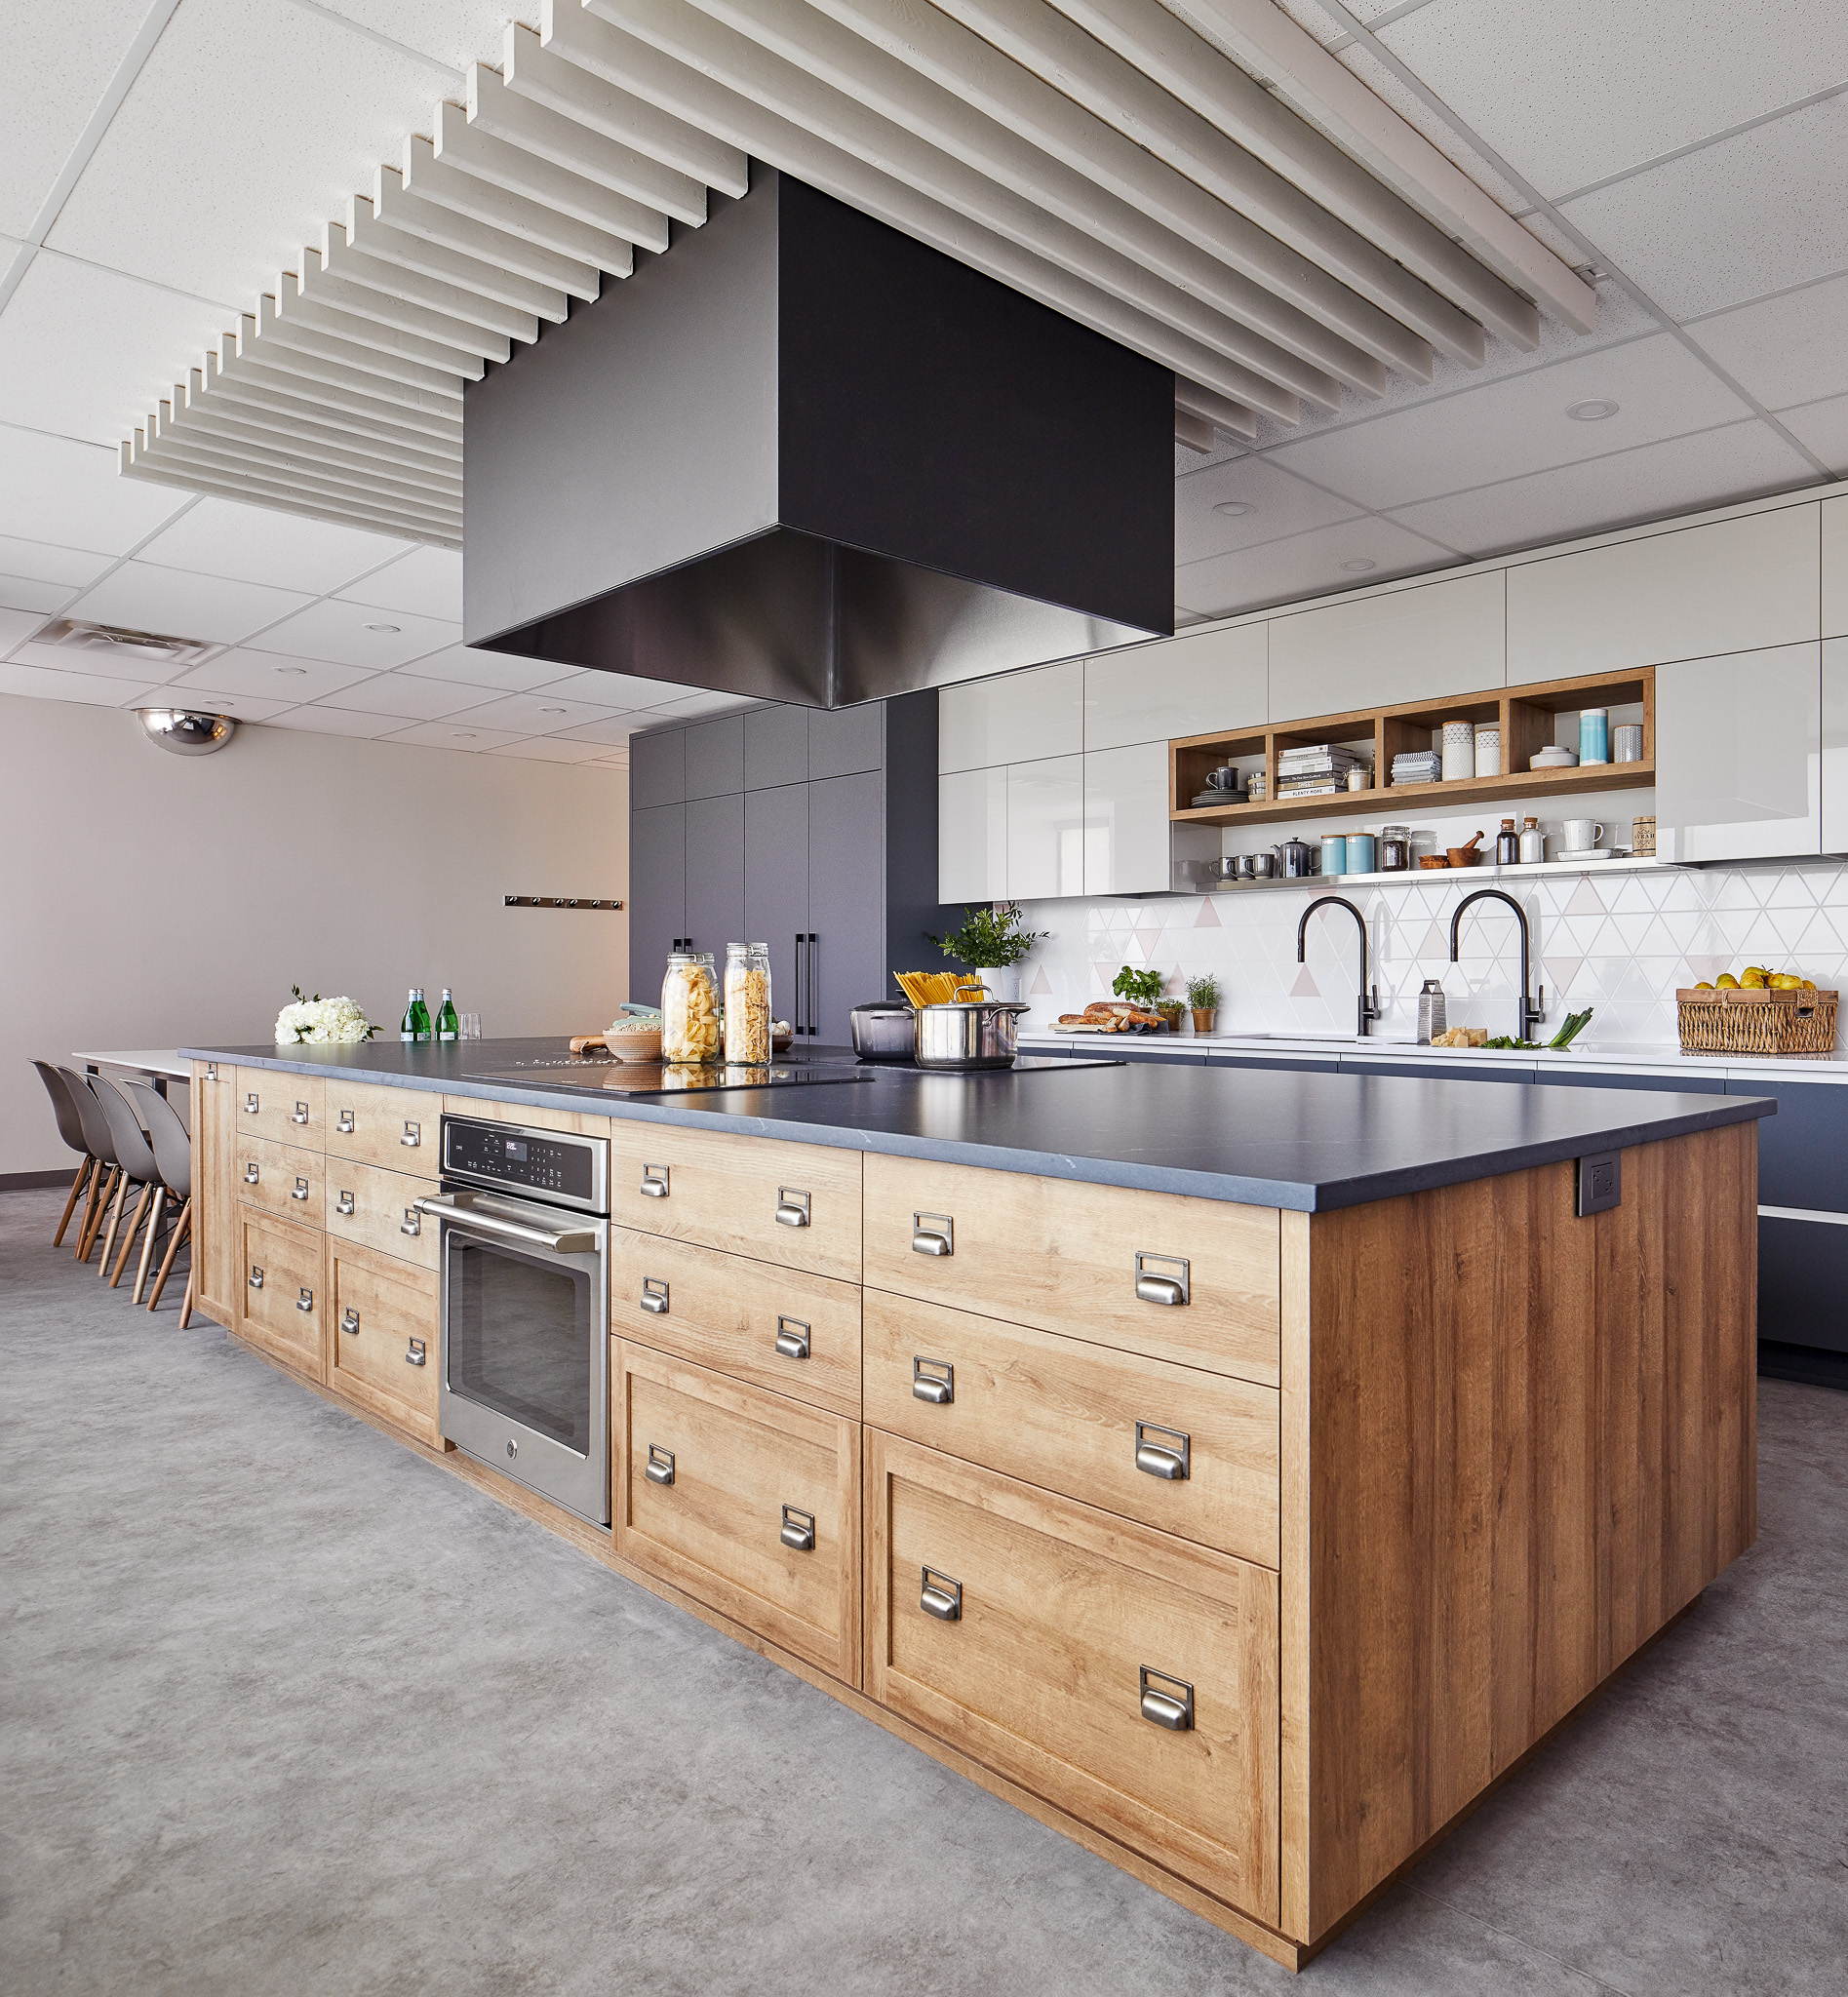 New kitchen offers a lot of storage, doubles of all appliances and a generously sized island with plenty of counter surface to facilitate usage of the kitchen by large groups.